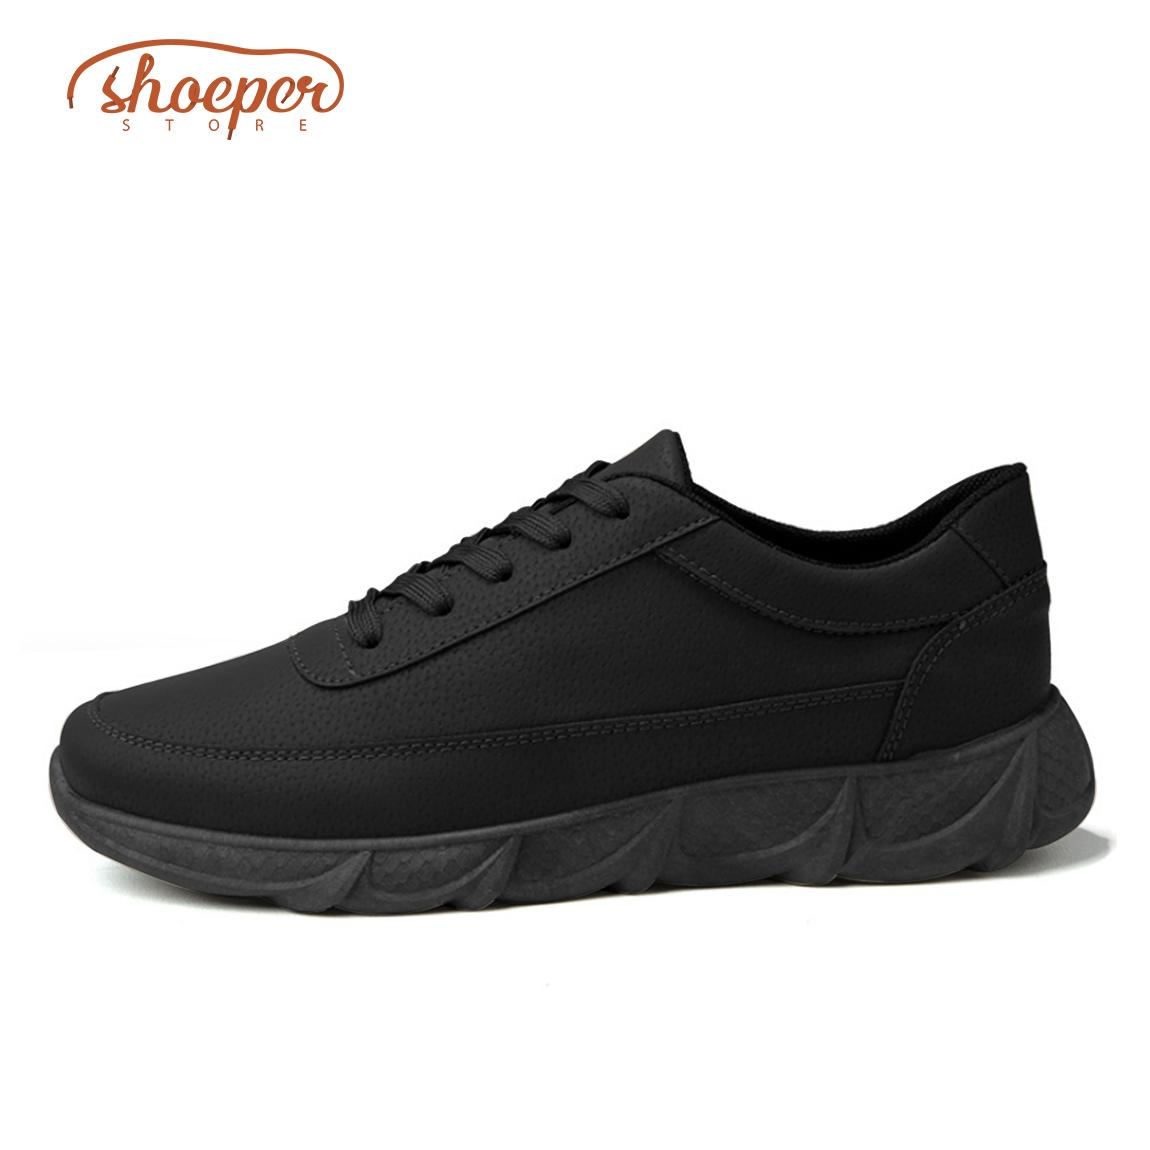 eea6824c593 Shoes for Men for sale - Mens Fashion Shoes Online Deals & Prices in ...